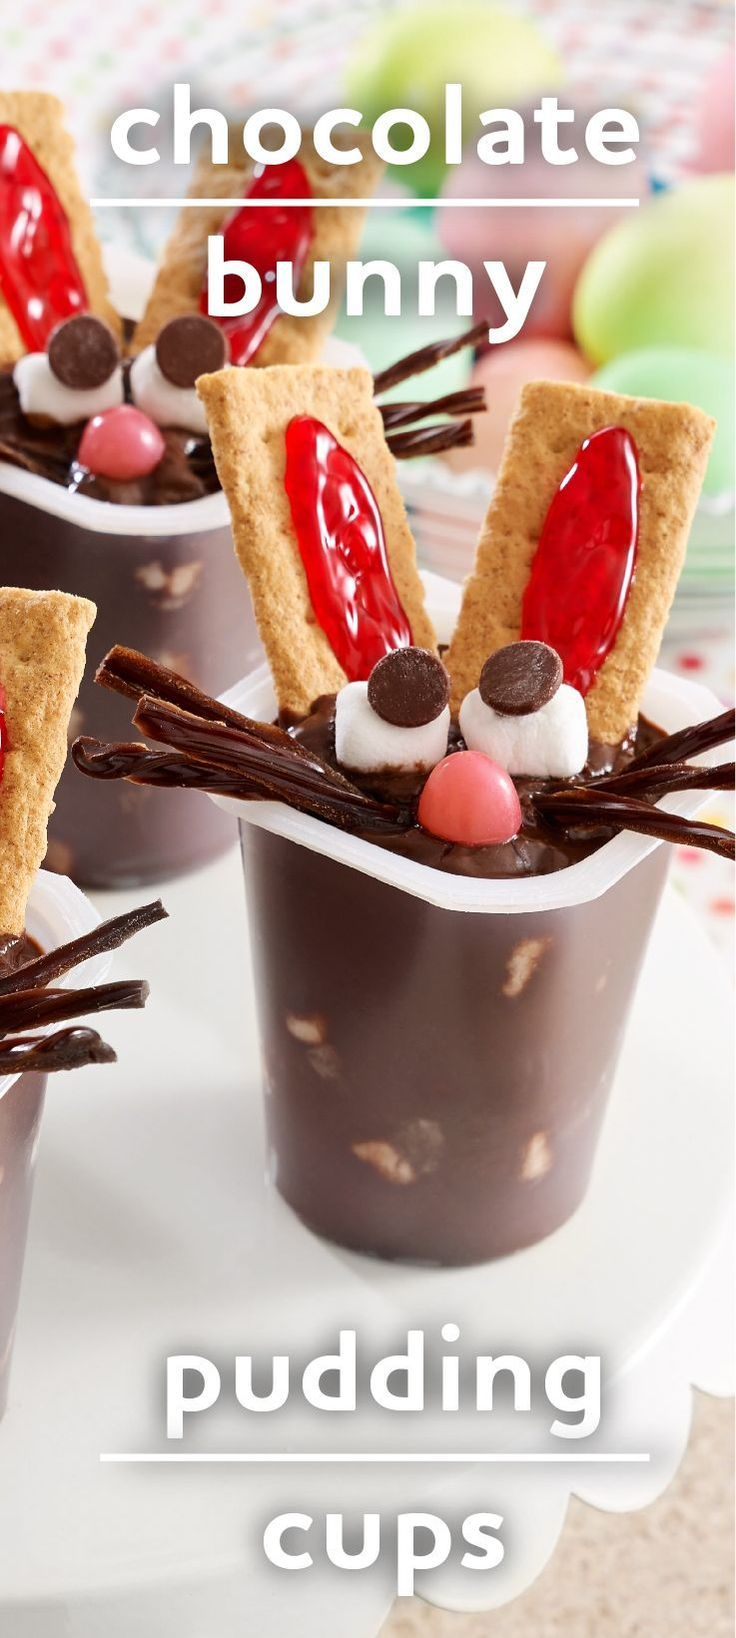 Chocolate Bunny Pudding Cups | Quick, easy Easter dessert! | Adorable treats for a hoppy holiday!